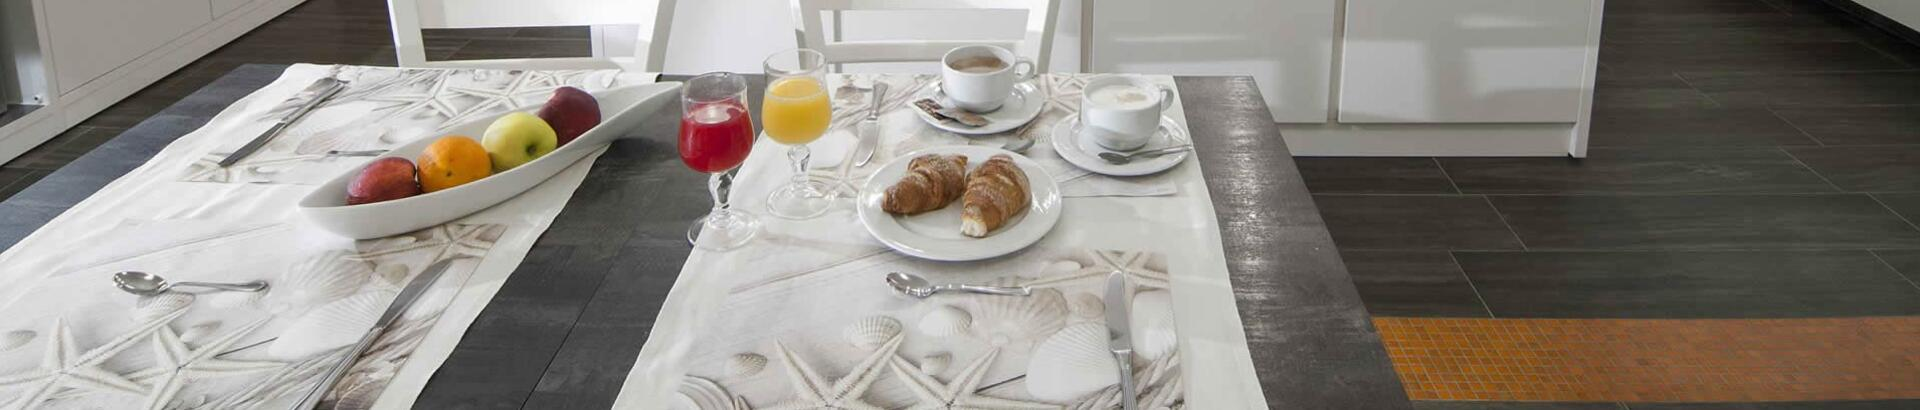 hotelcasablanca en breakfast 003